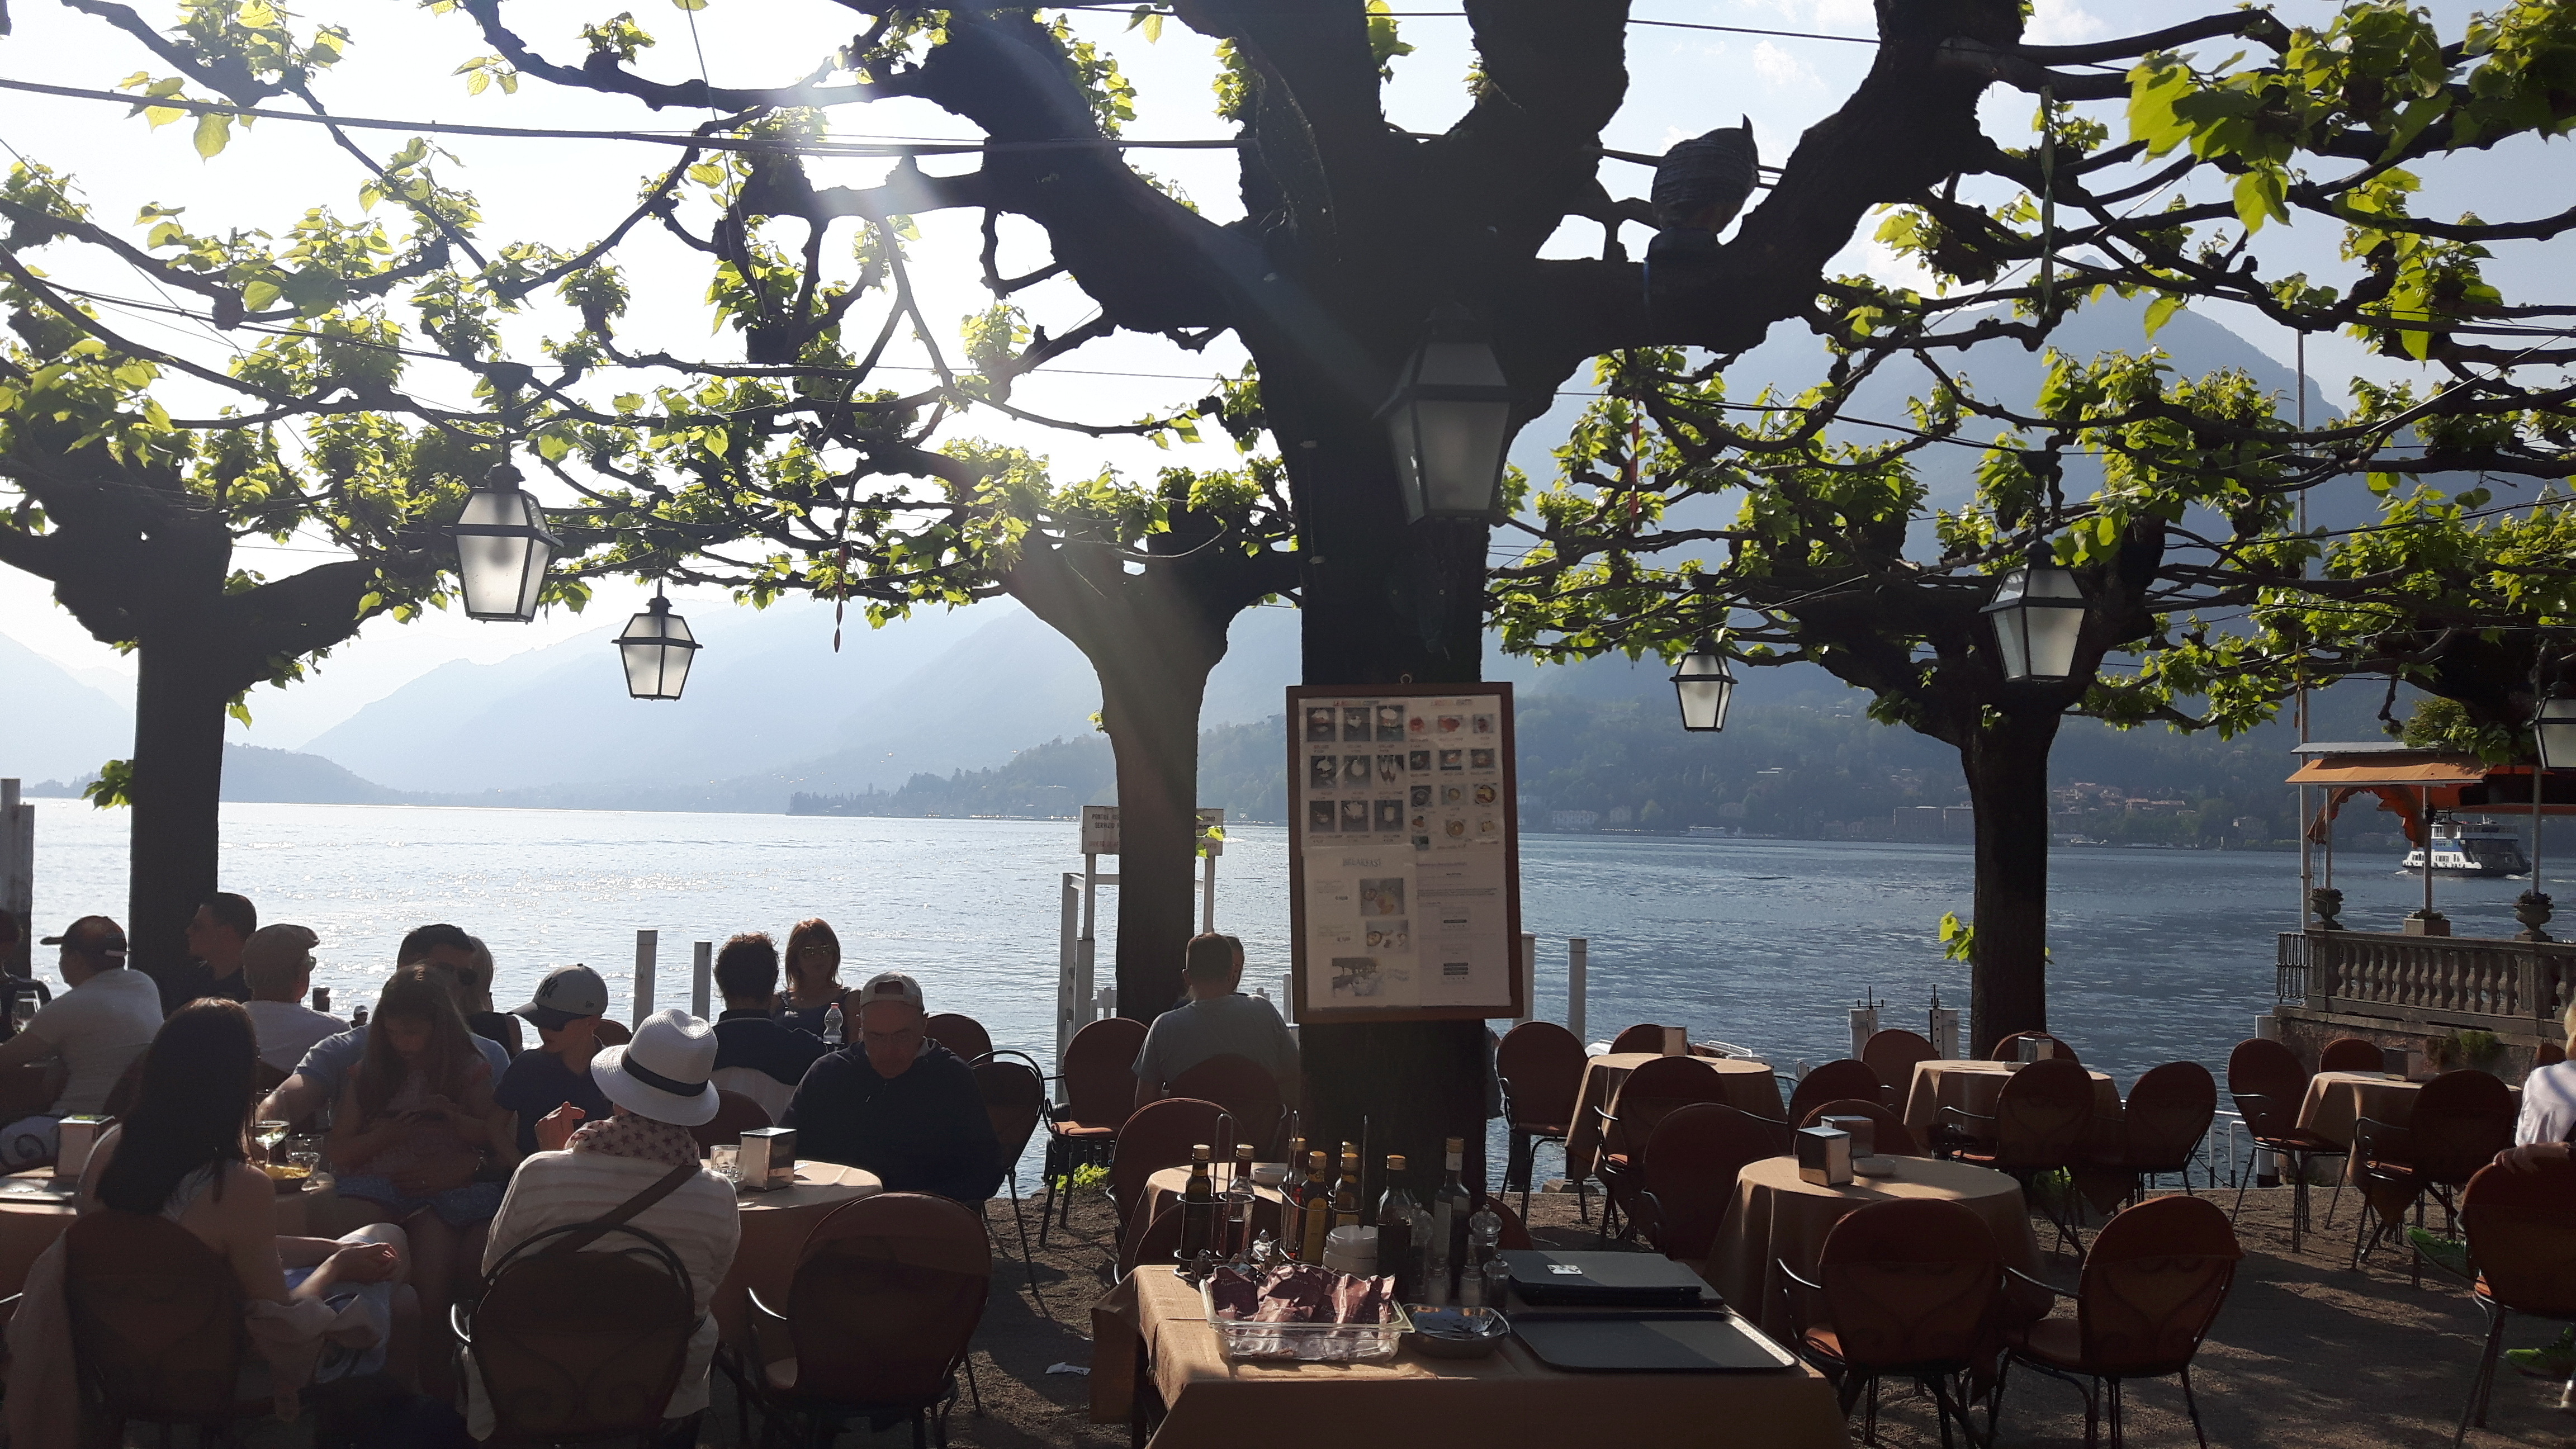 Tour Lake Como in 3 days: don't miss a single view